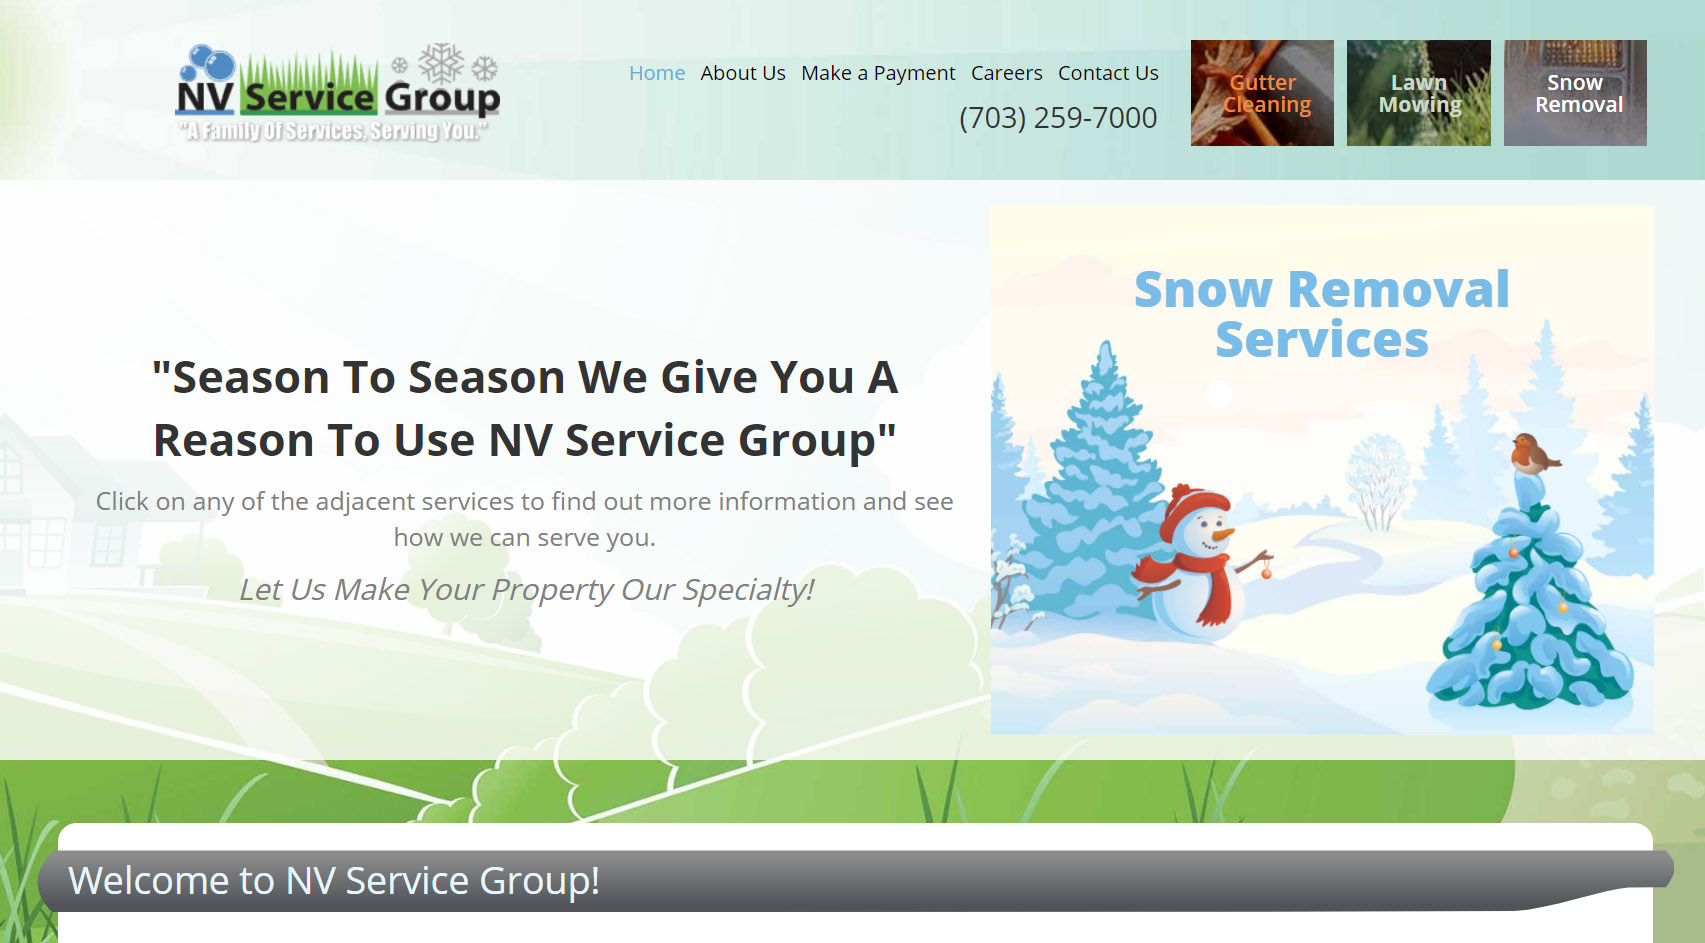 New Site Launch: NV Service Group   Lawn Mowing, Gutter Cleaning, and Snow Removal Website Nv Service Group Lawn Care Gutter Cleaning Snow Removal